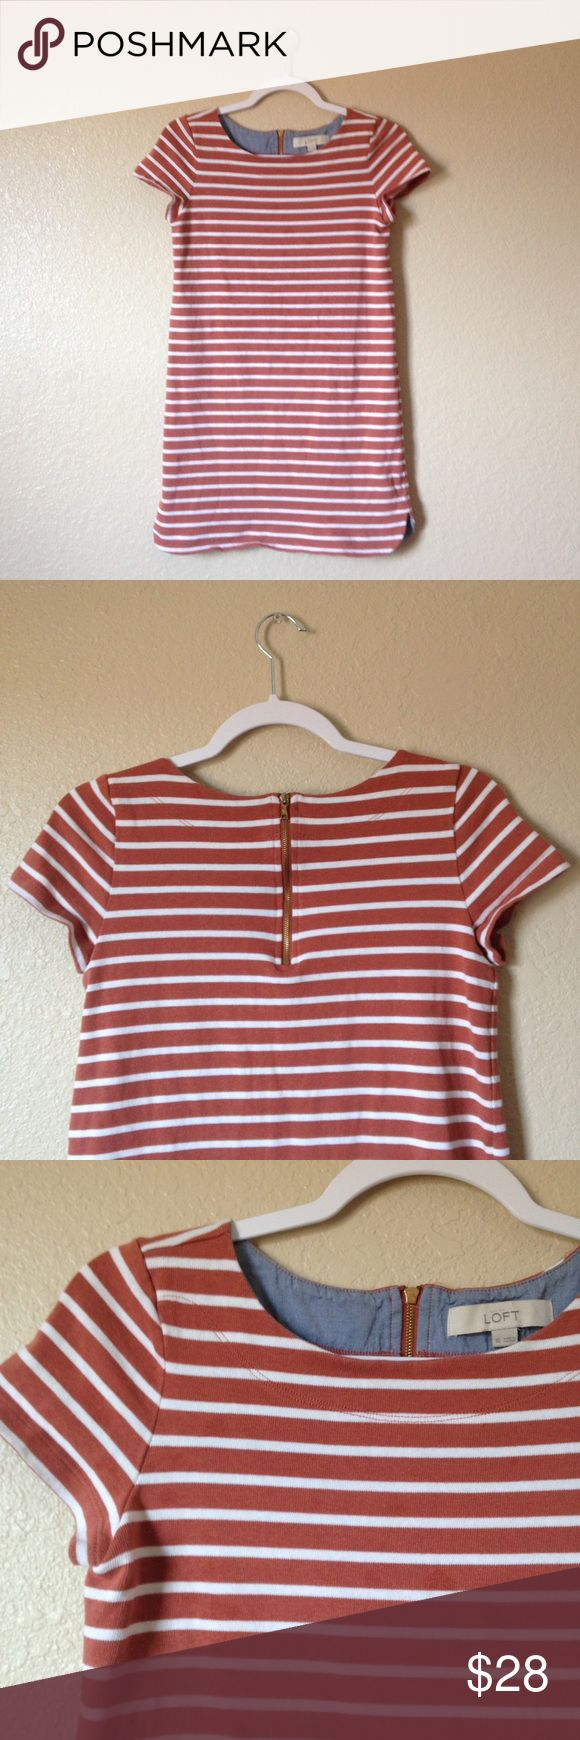 Lift Striped T-Shirt Dress Super cute and comfy Loft striped t-shirt dress, size XS. I accept reasonable offers! 😊 LOFT Dresses